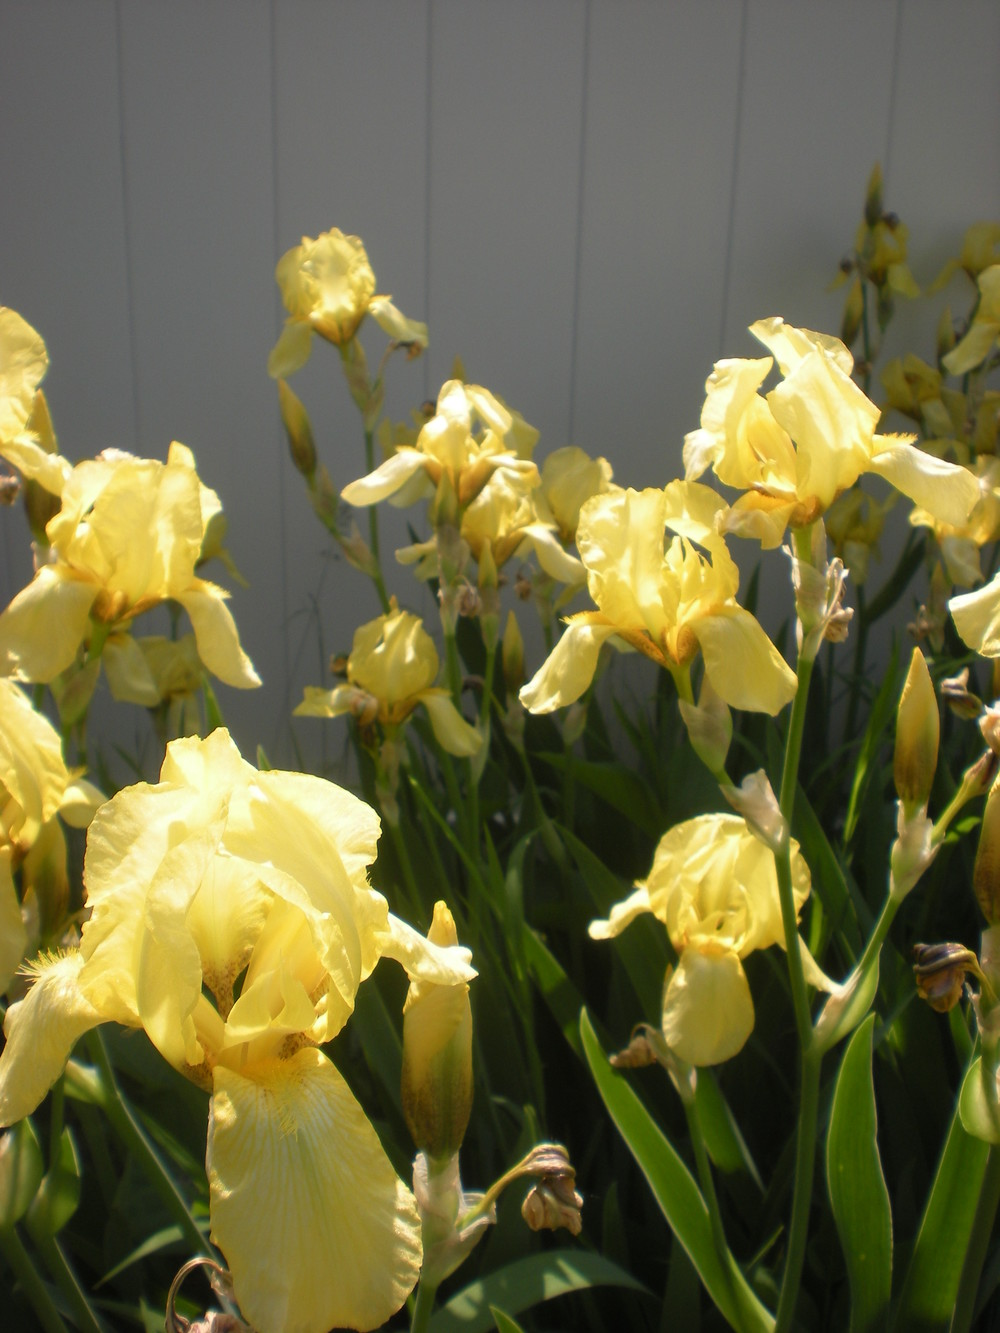 LOOKING GOOD Sun-kissed irises brighten the yard and my spirits.